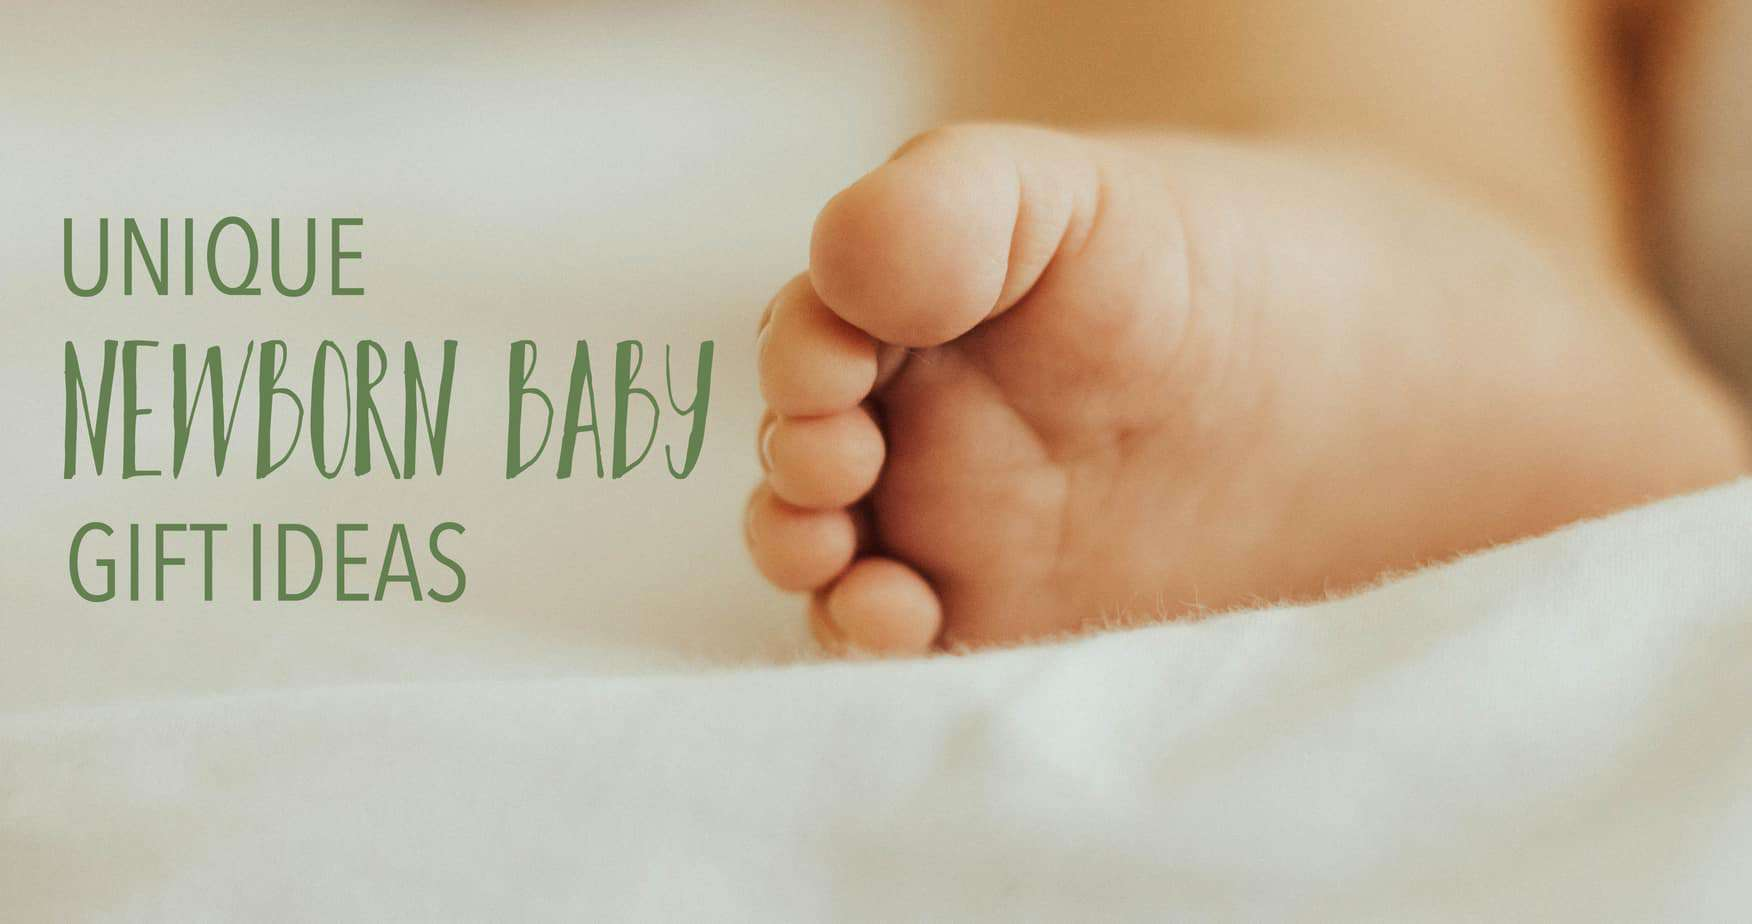 Unique newborn baby gift ideas to welcome home baby boy or girl